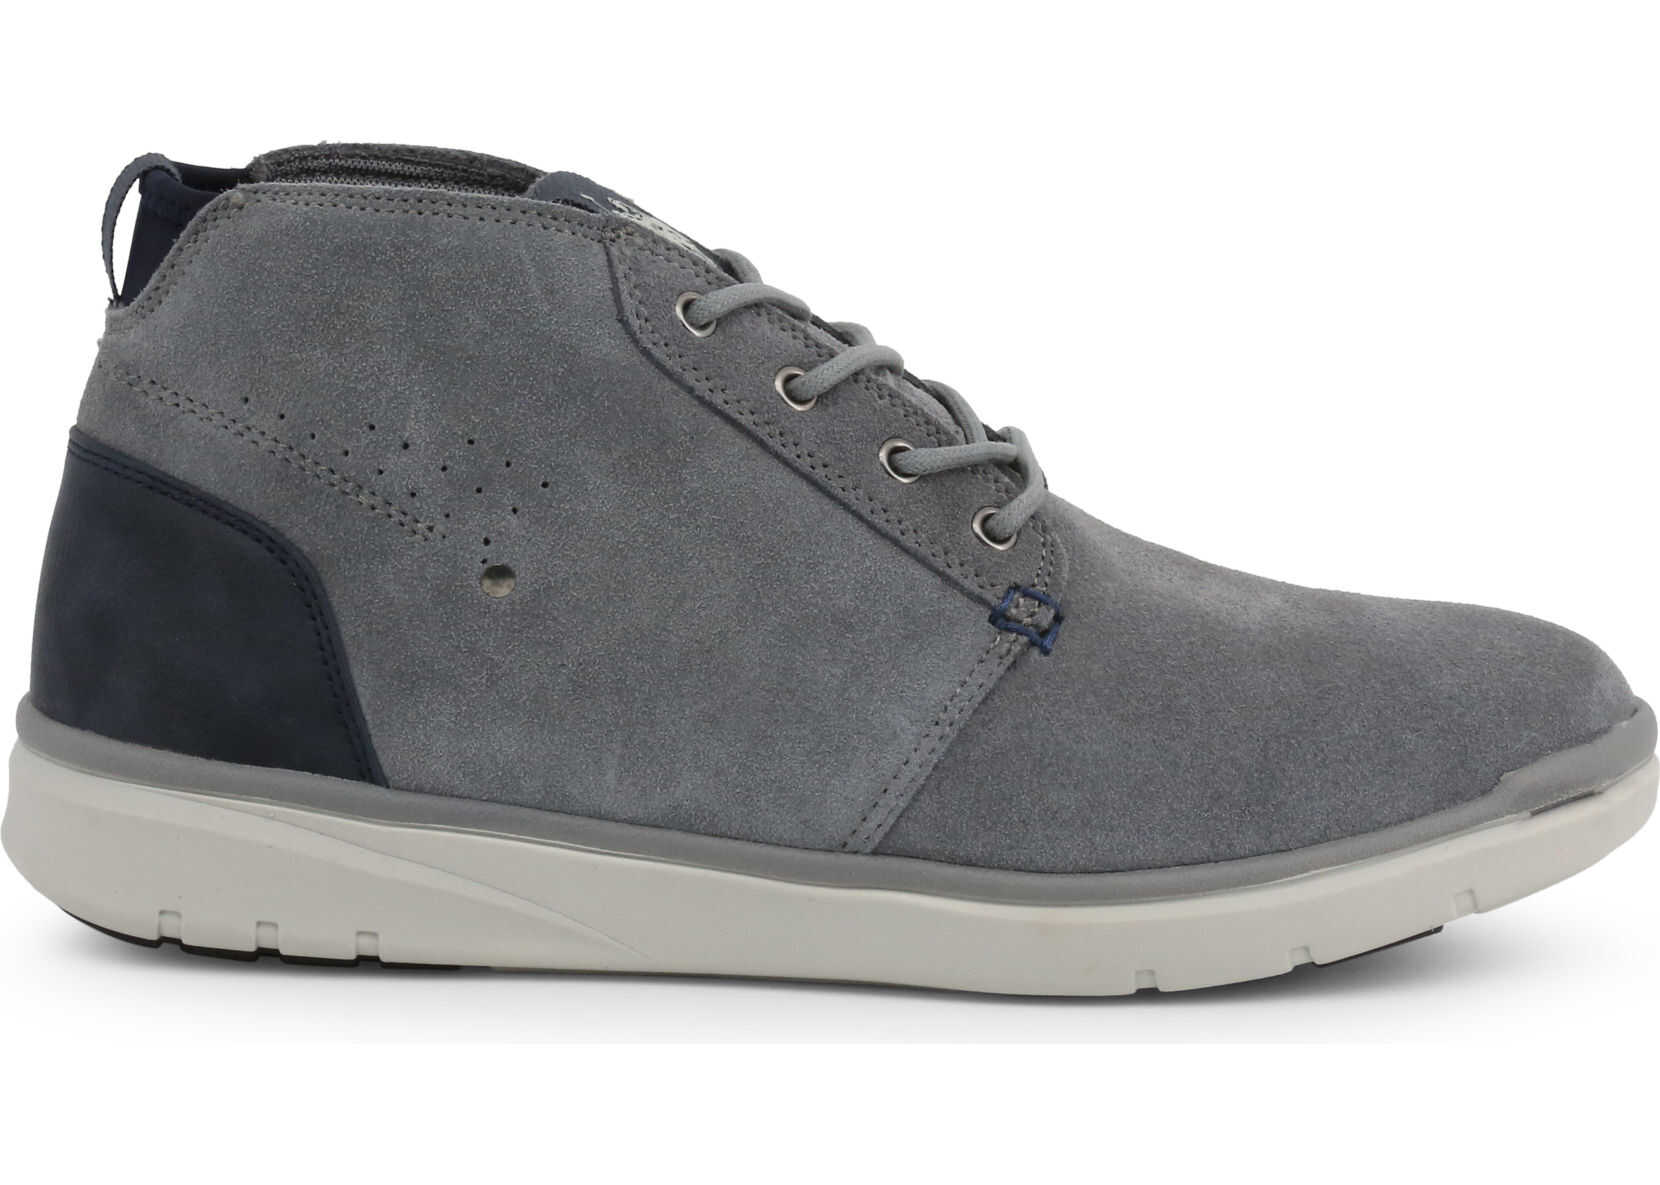 U.S. POLO ASSN. Ygor4128W9_Sy1 GREY